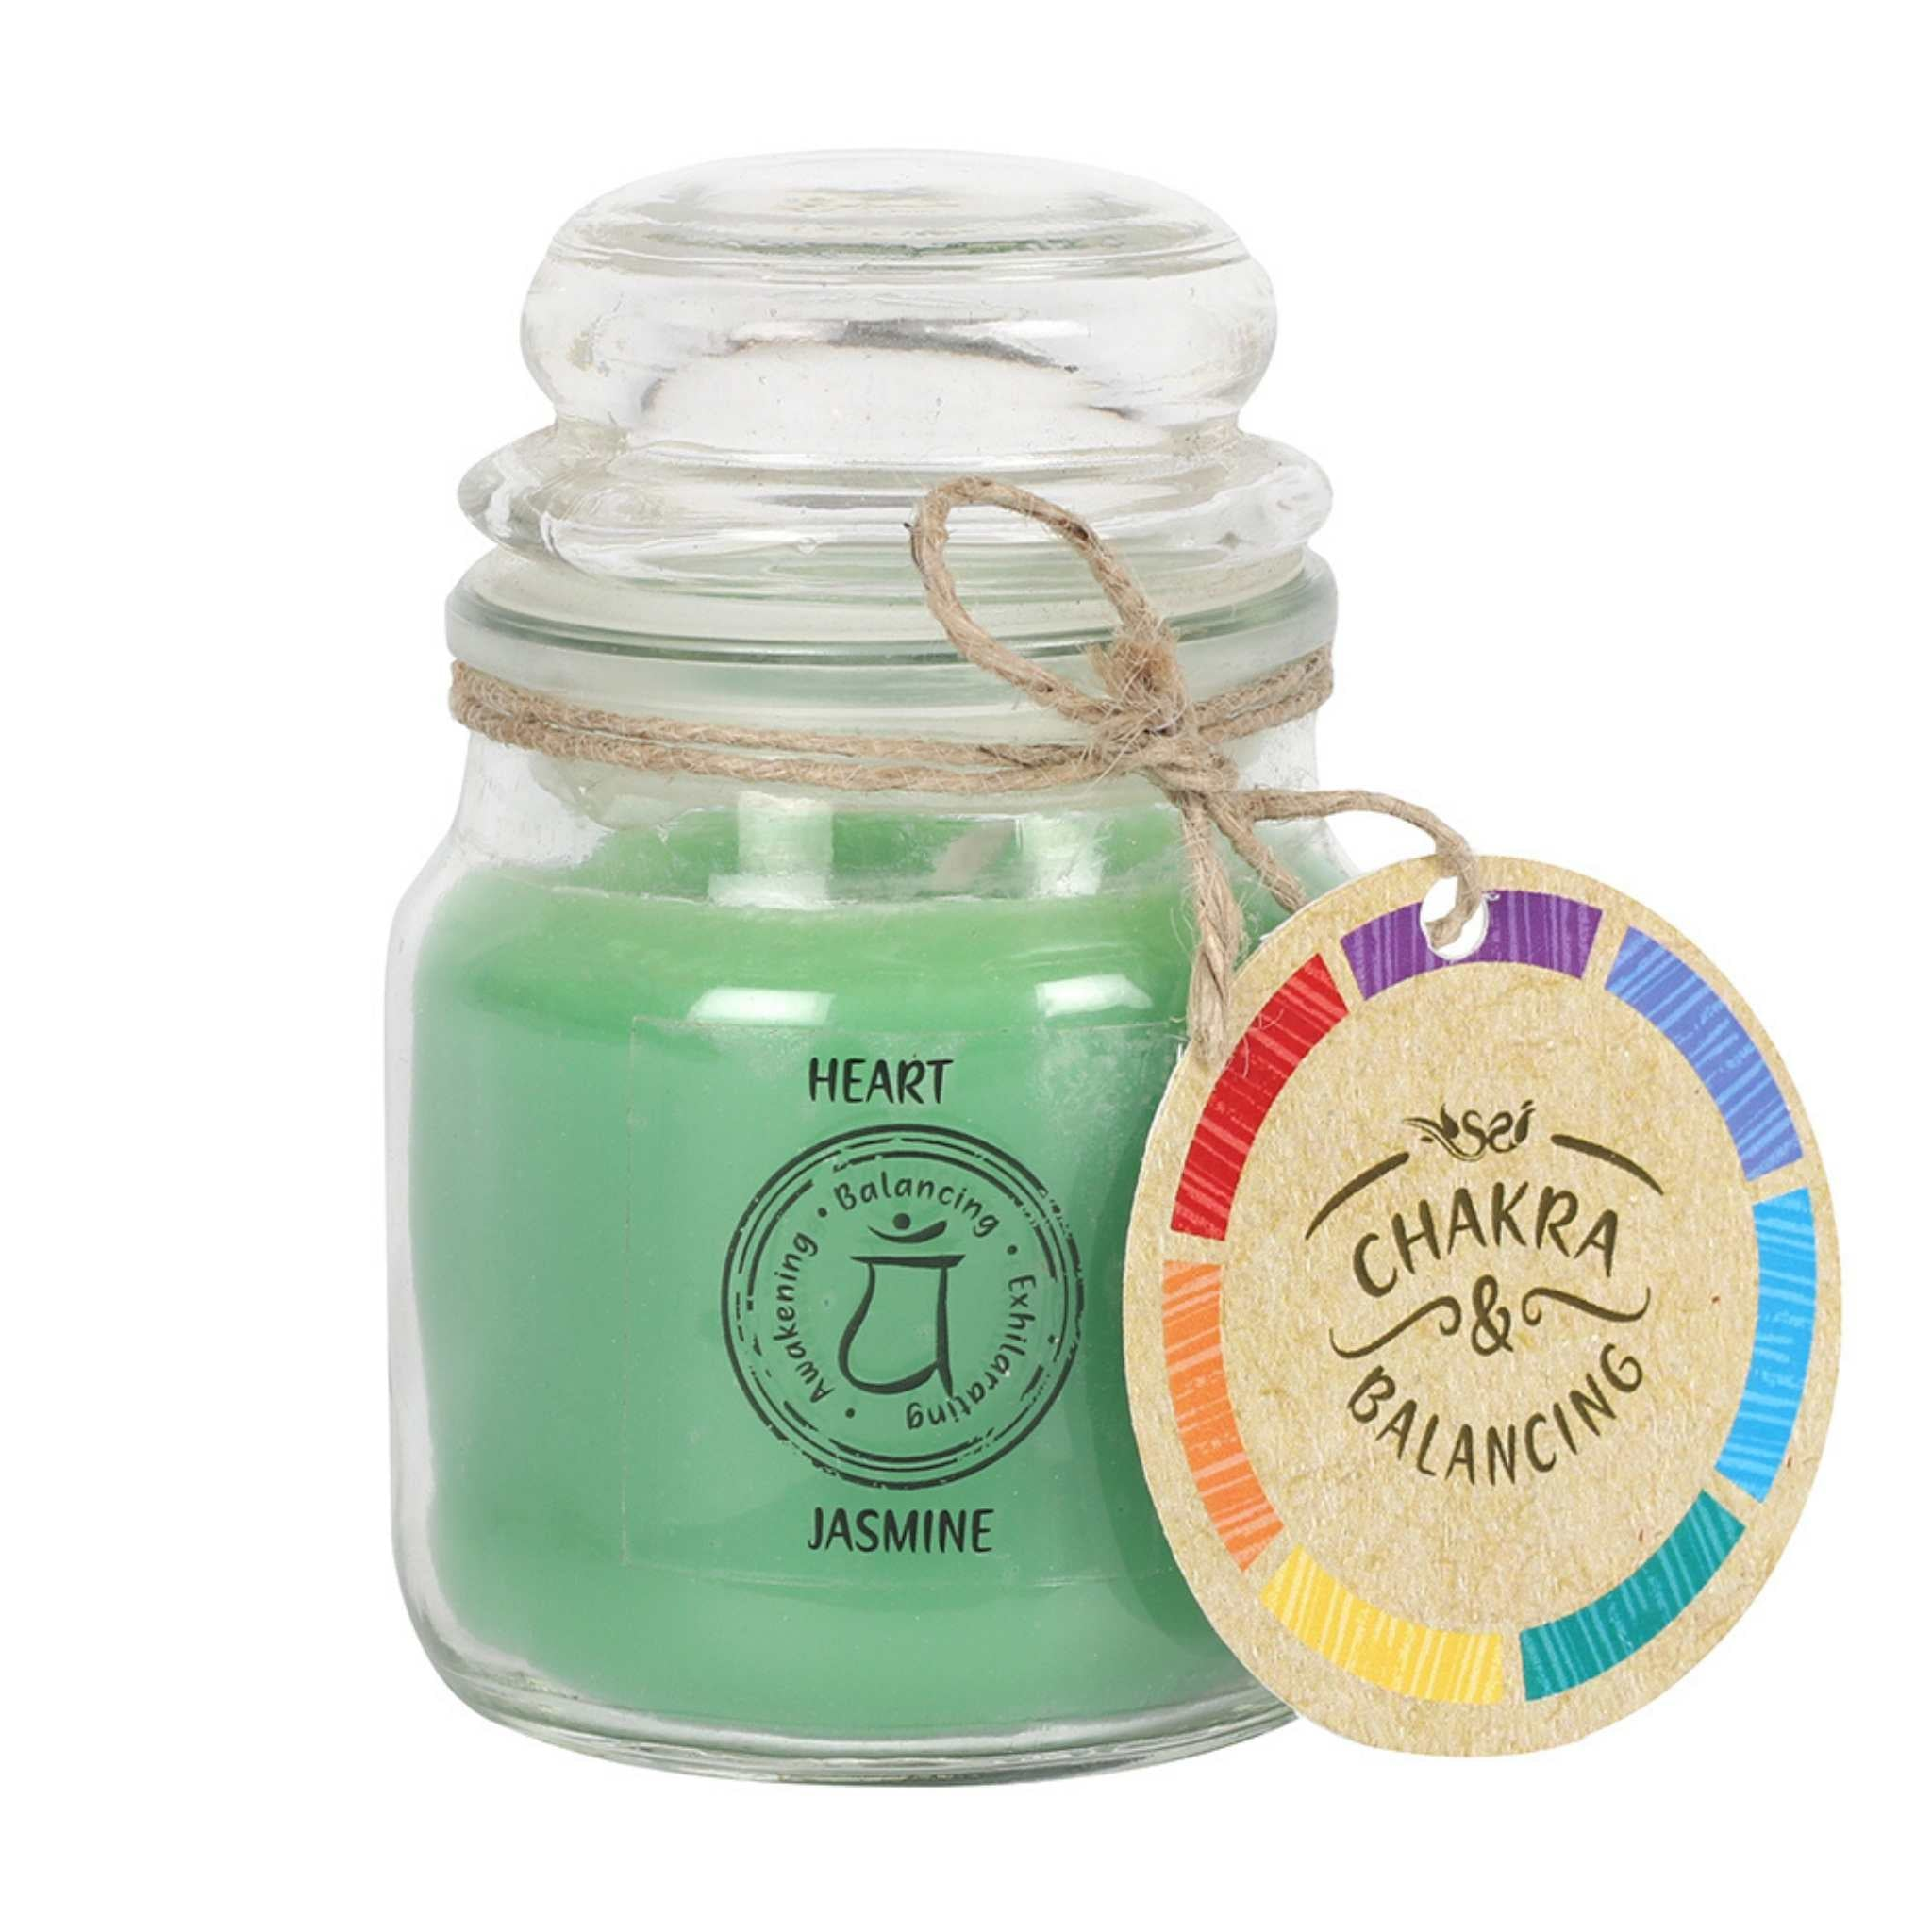 Balancing Chakra Candle in a min glass jar with stopper. Tied with a label that says Chakra Balancing. Candle is green with a label on the jar that says Heart - Jasmine